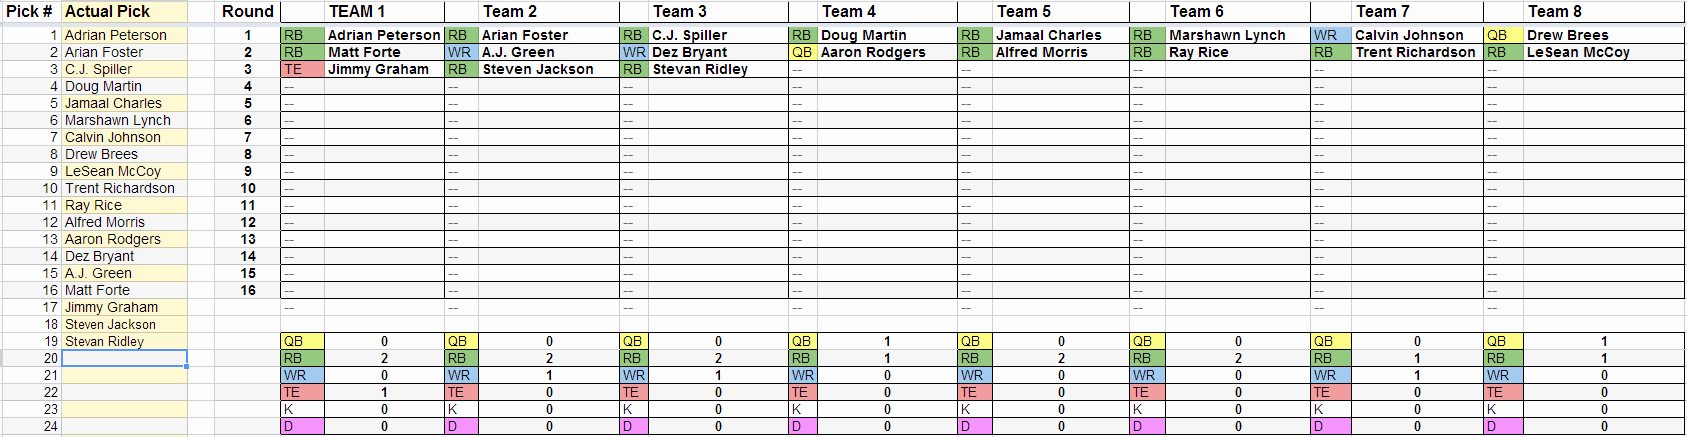 Fantasy Football Spreadsheet Template New Fantasy Football Draft Spreadsheet Download Fantasy